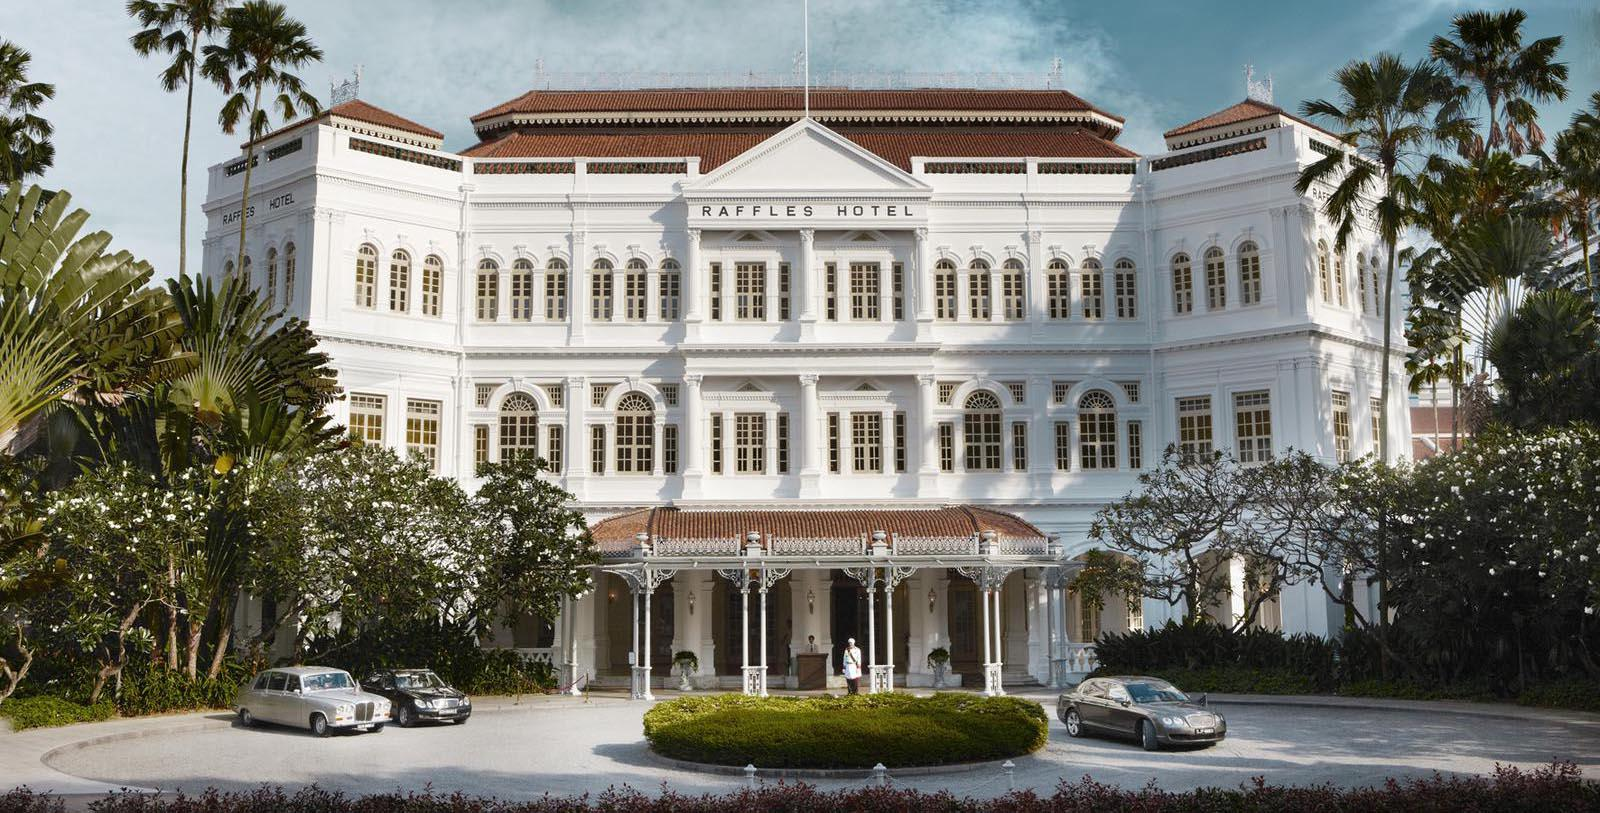 Image of Hotel Exterior Raffles Singapore, 1887, Member of Historic Hotels Worldwide, Singapore, Spa